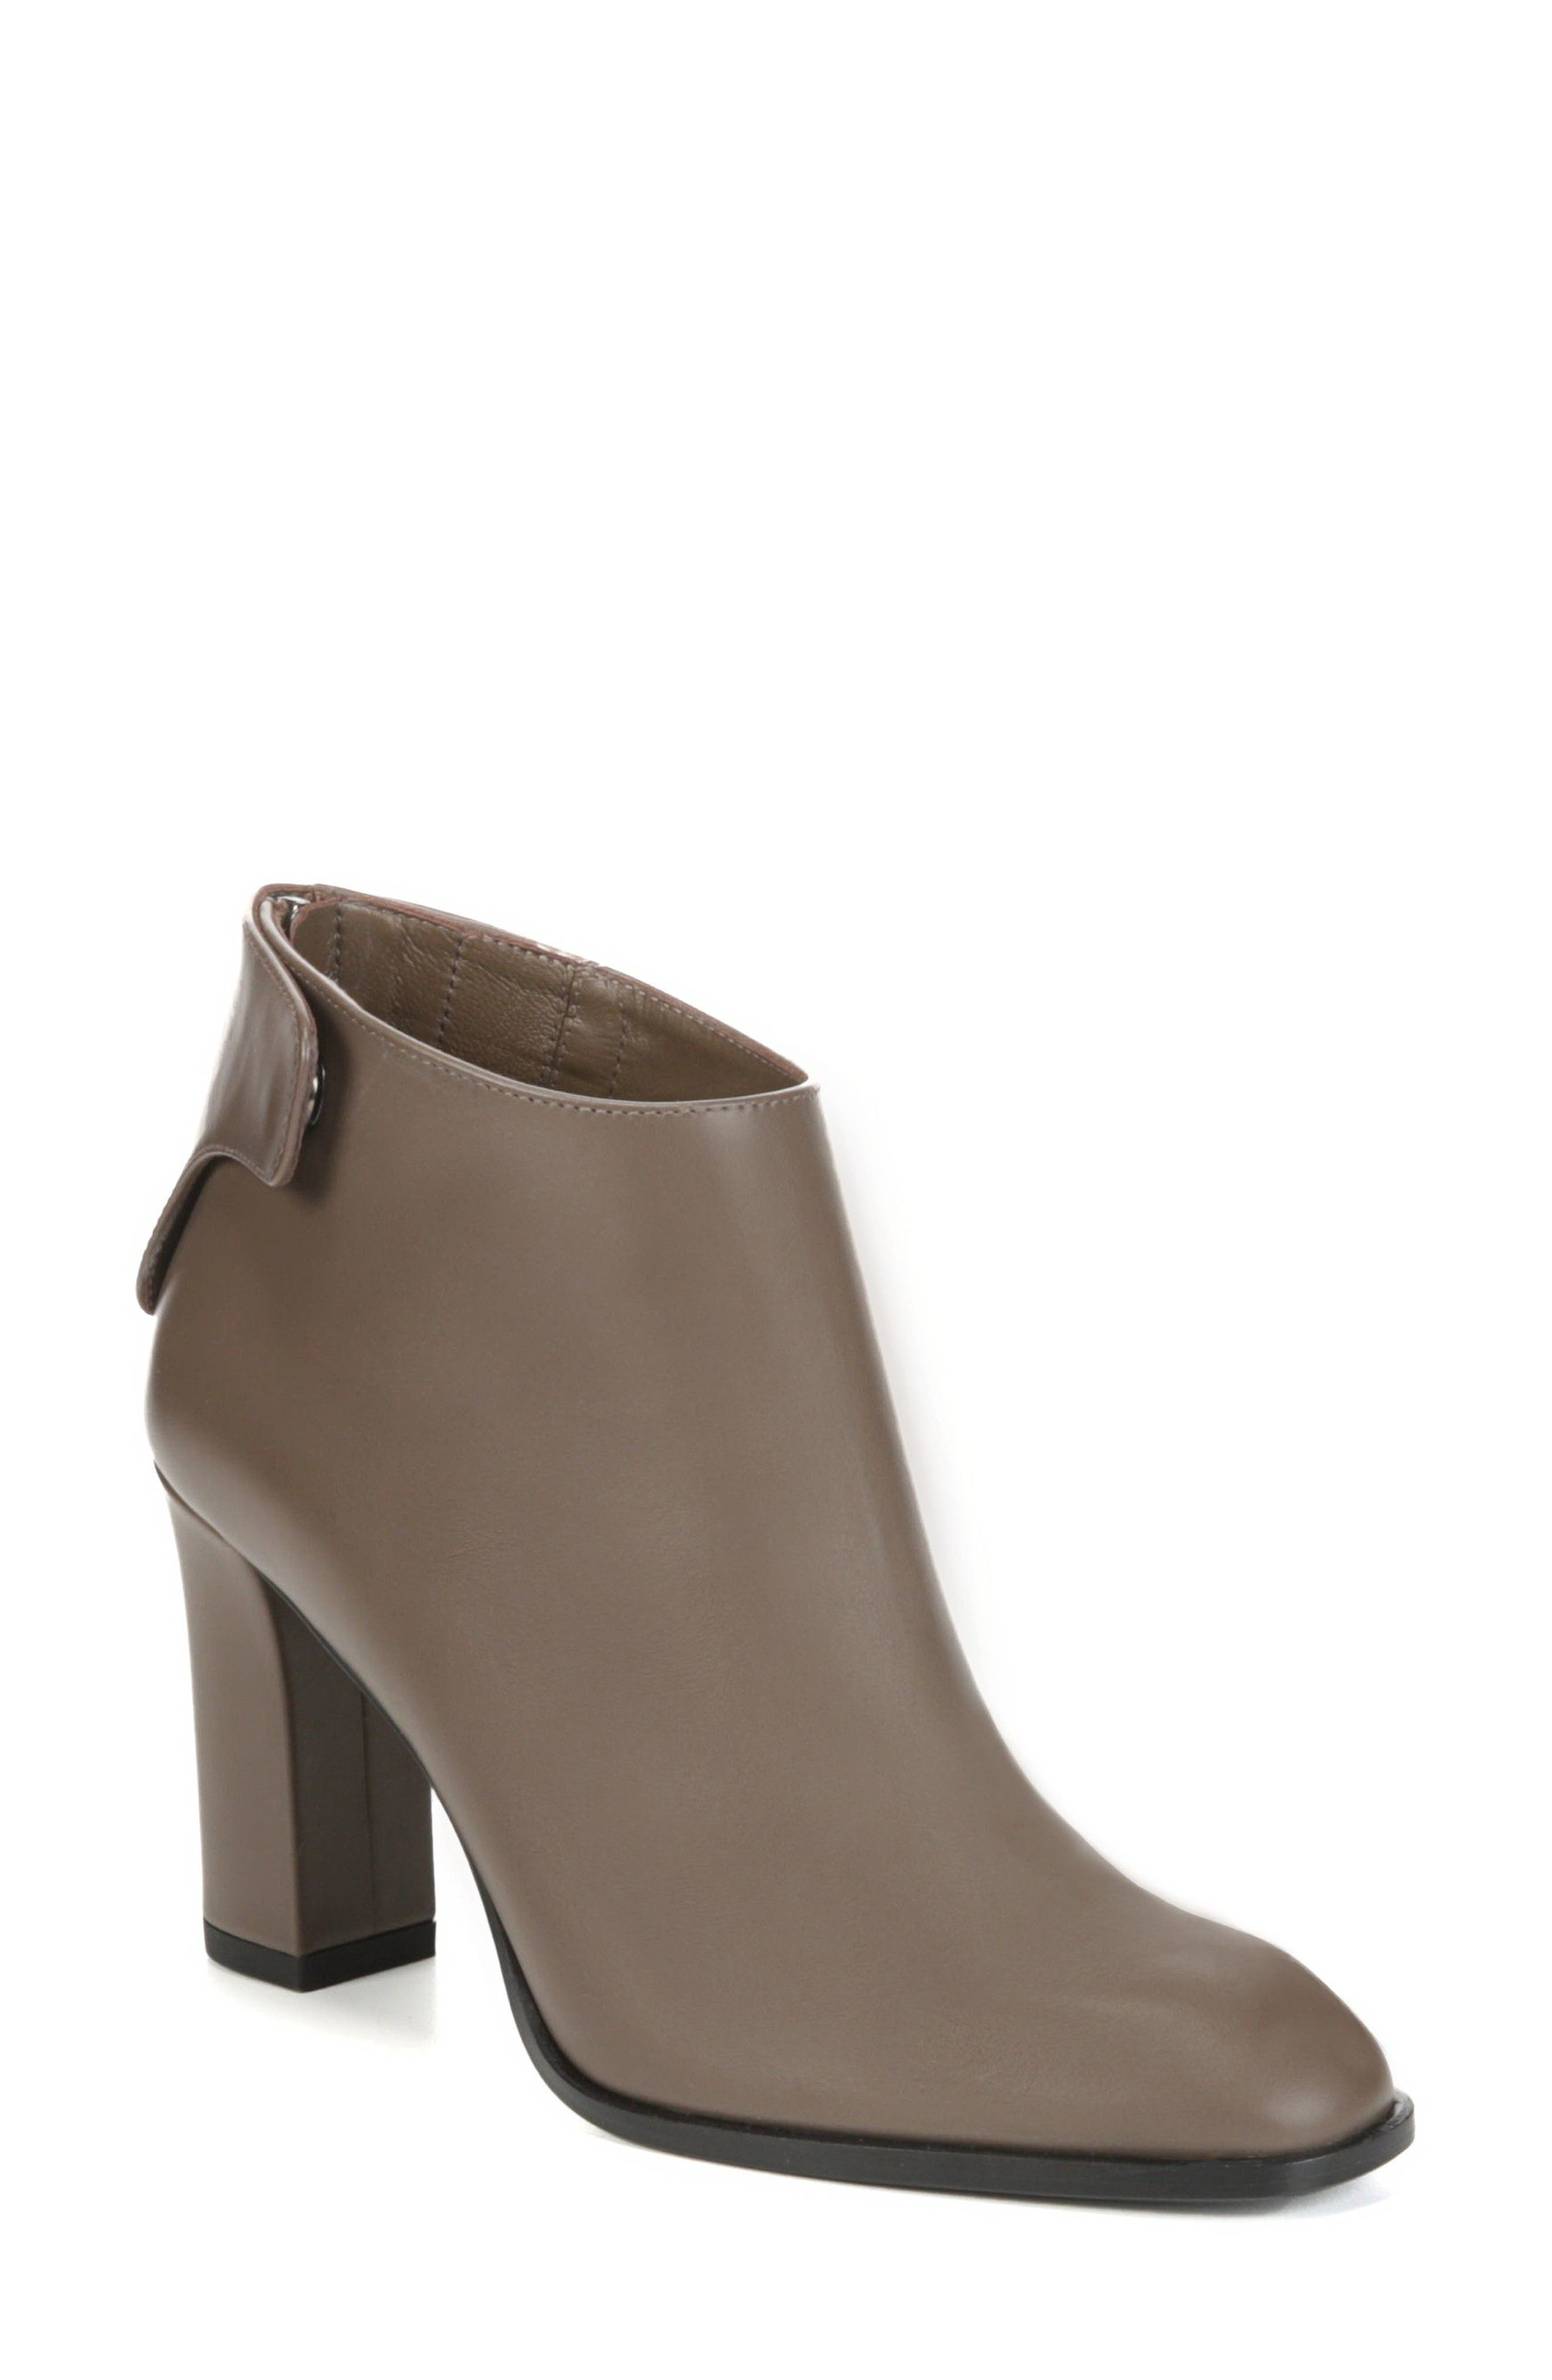 Aston Ankle Boot,                         Main,                         color, Bark Leather